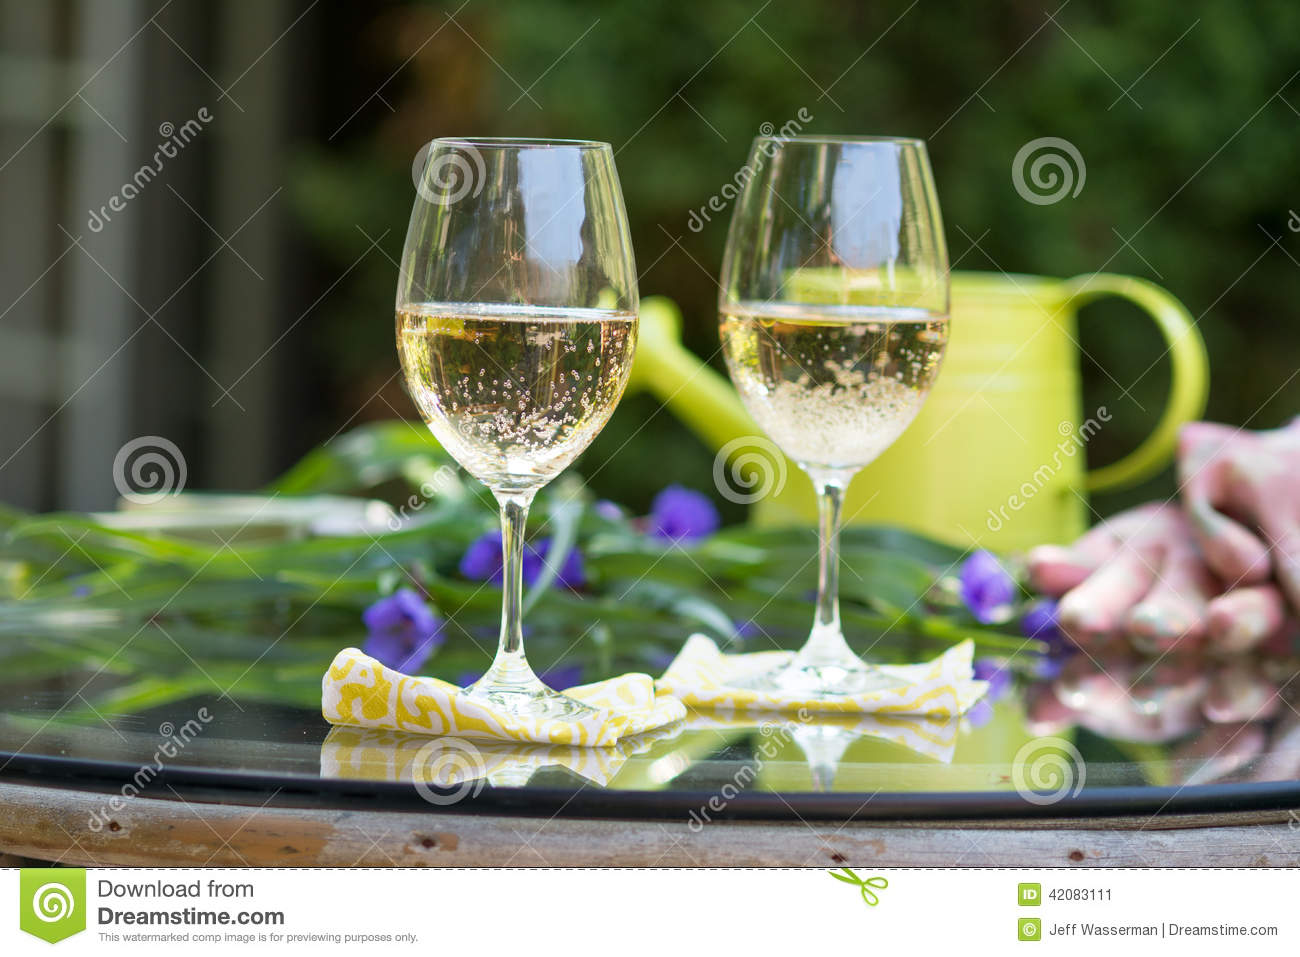 White wine in the garden for break time stock image image of glass of white wine set outdoors on glass table with flowers and other greenery as well as a watering can and gardening gloves for a break from gardening mightylinksfo